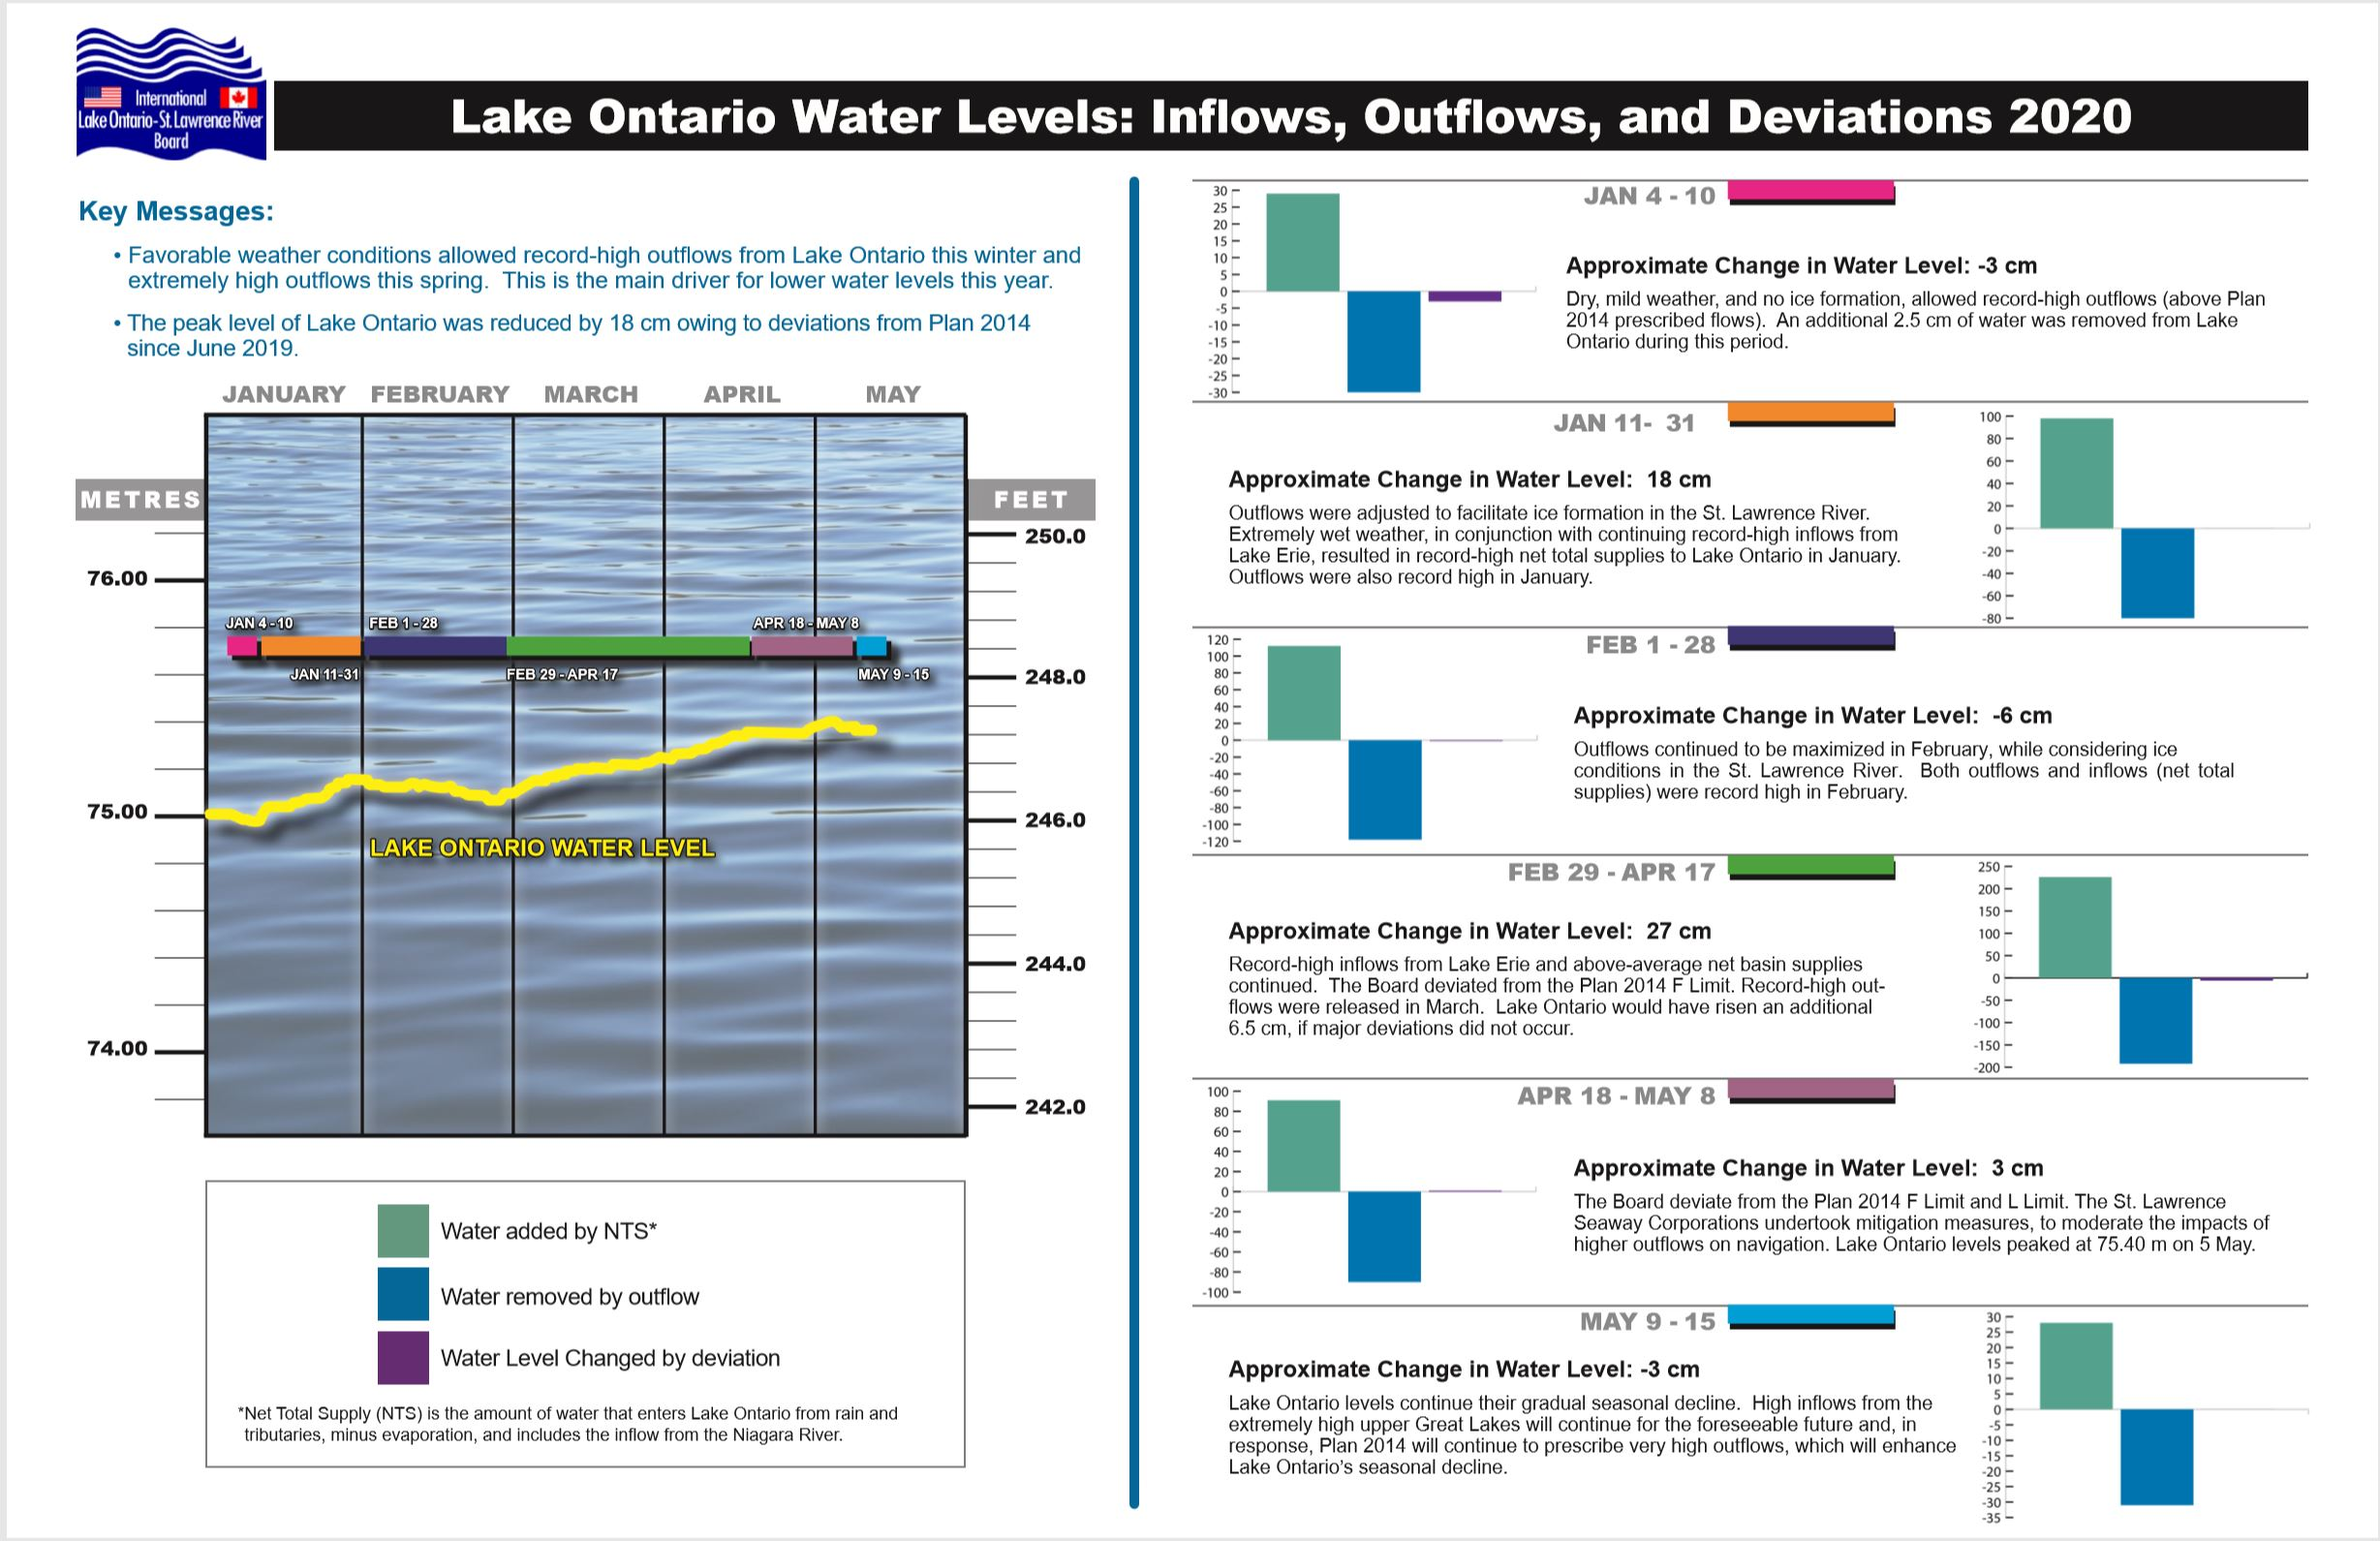 Lake Ontario Water Levels: Inflows, Outflows, and Deviations 2020